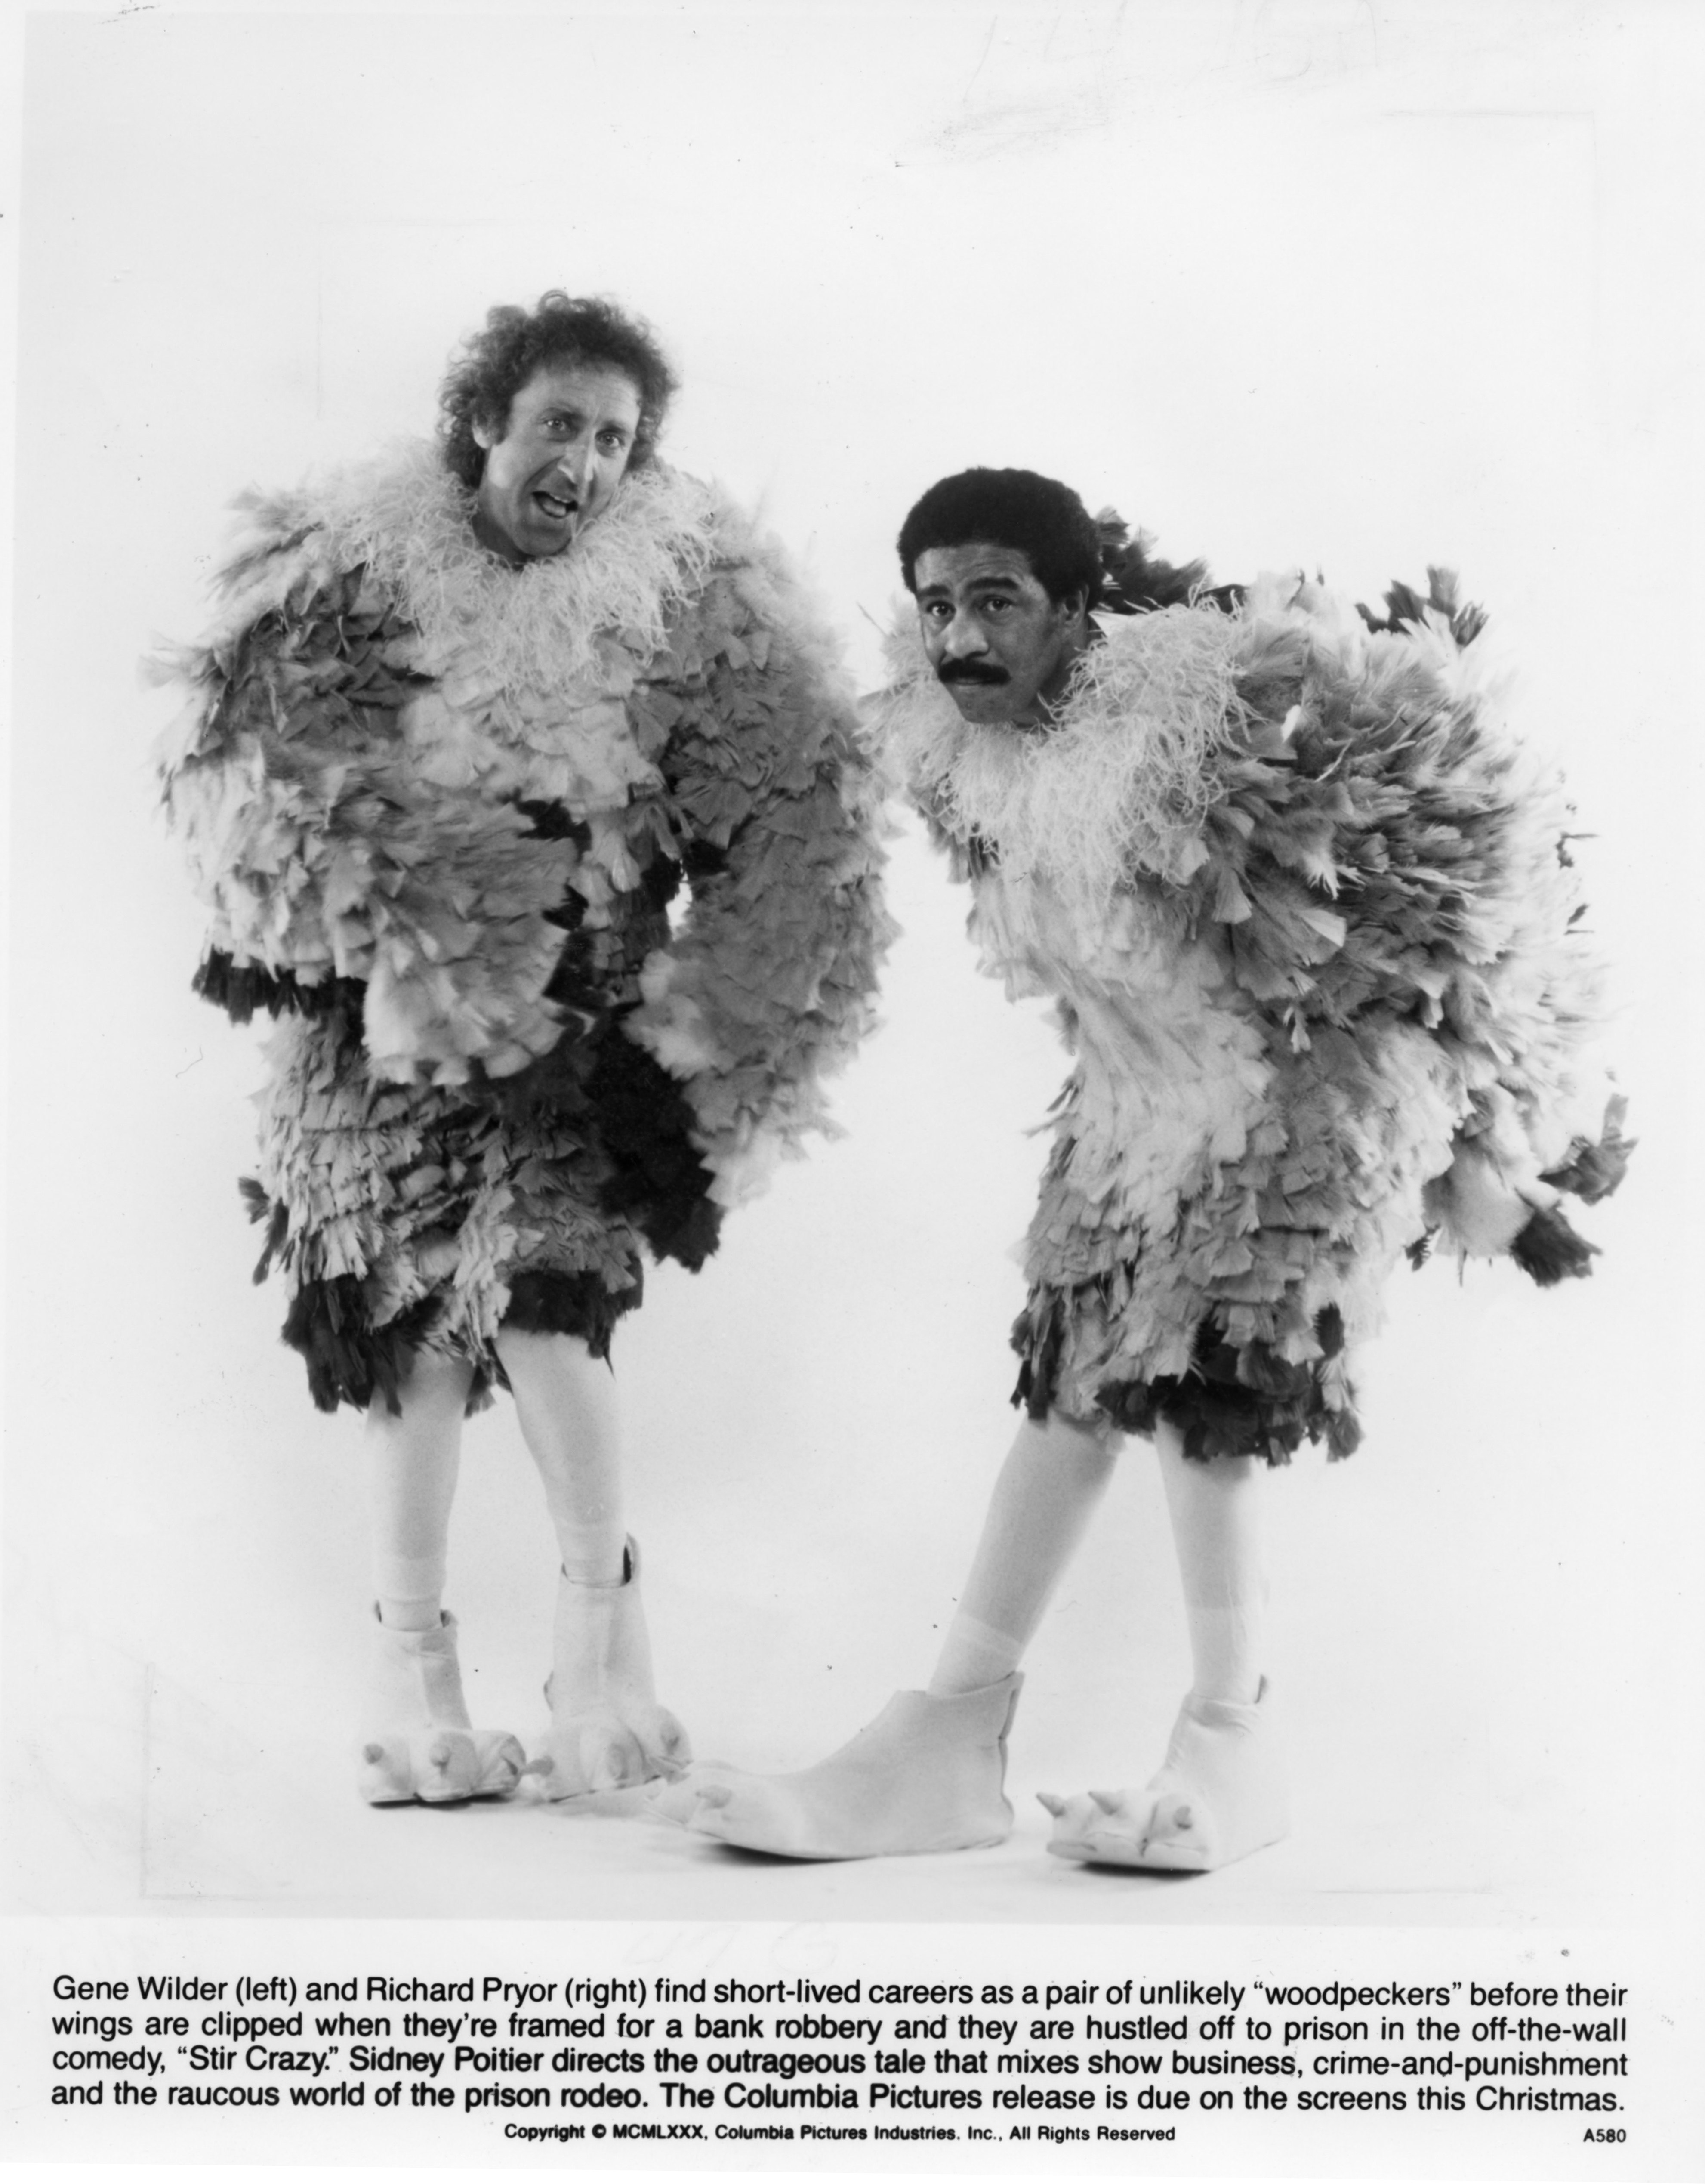 Gene Wilder and Richard Pryo